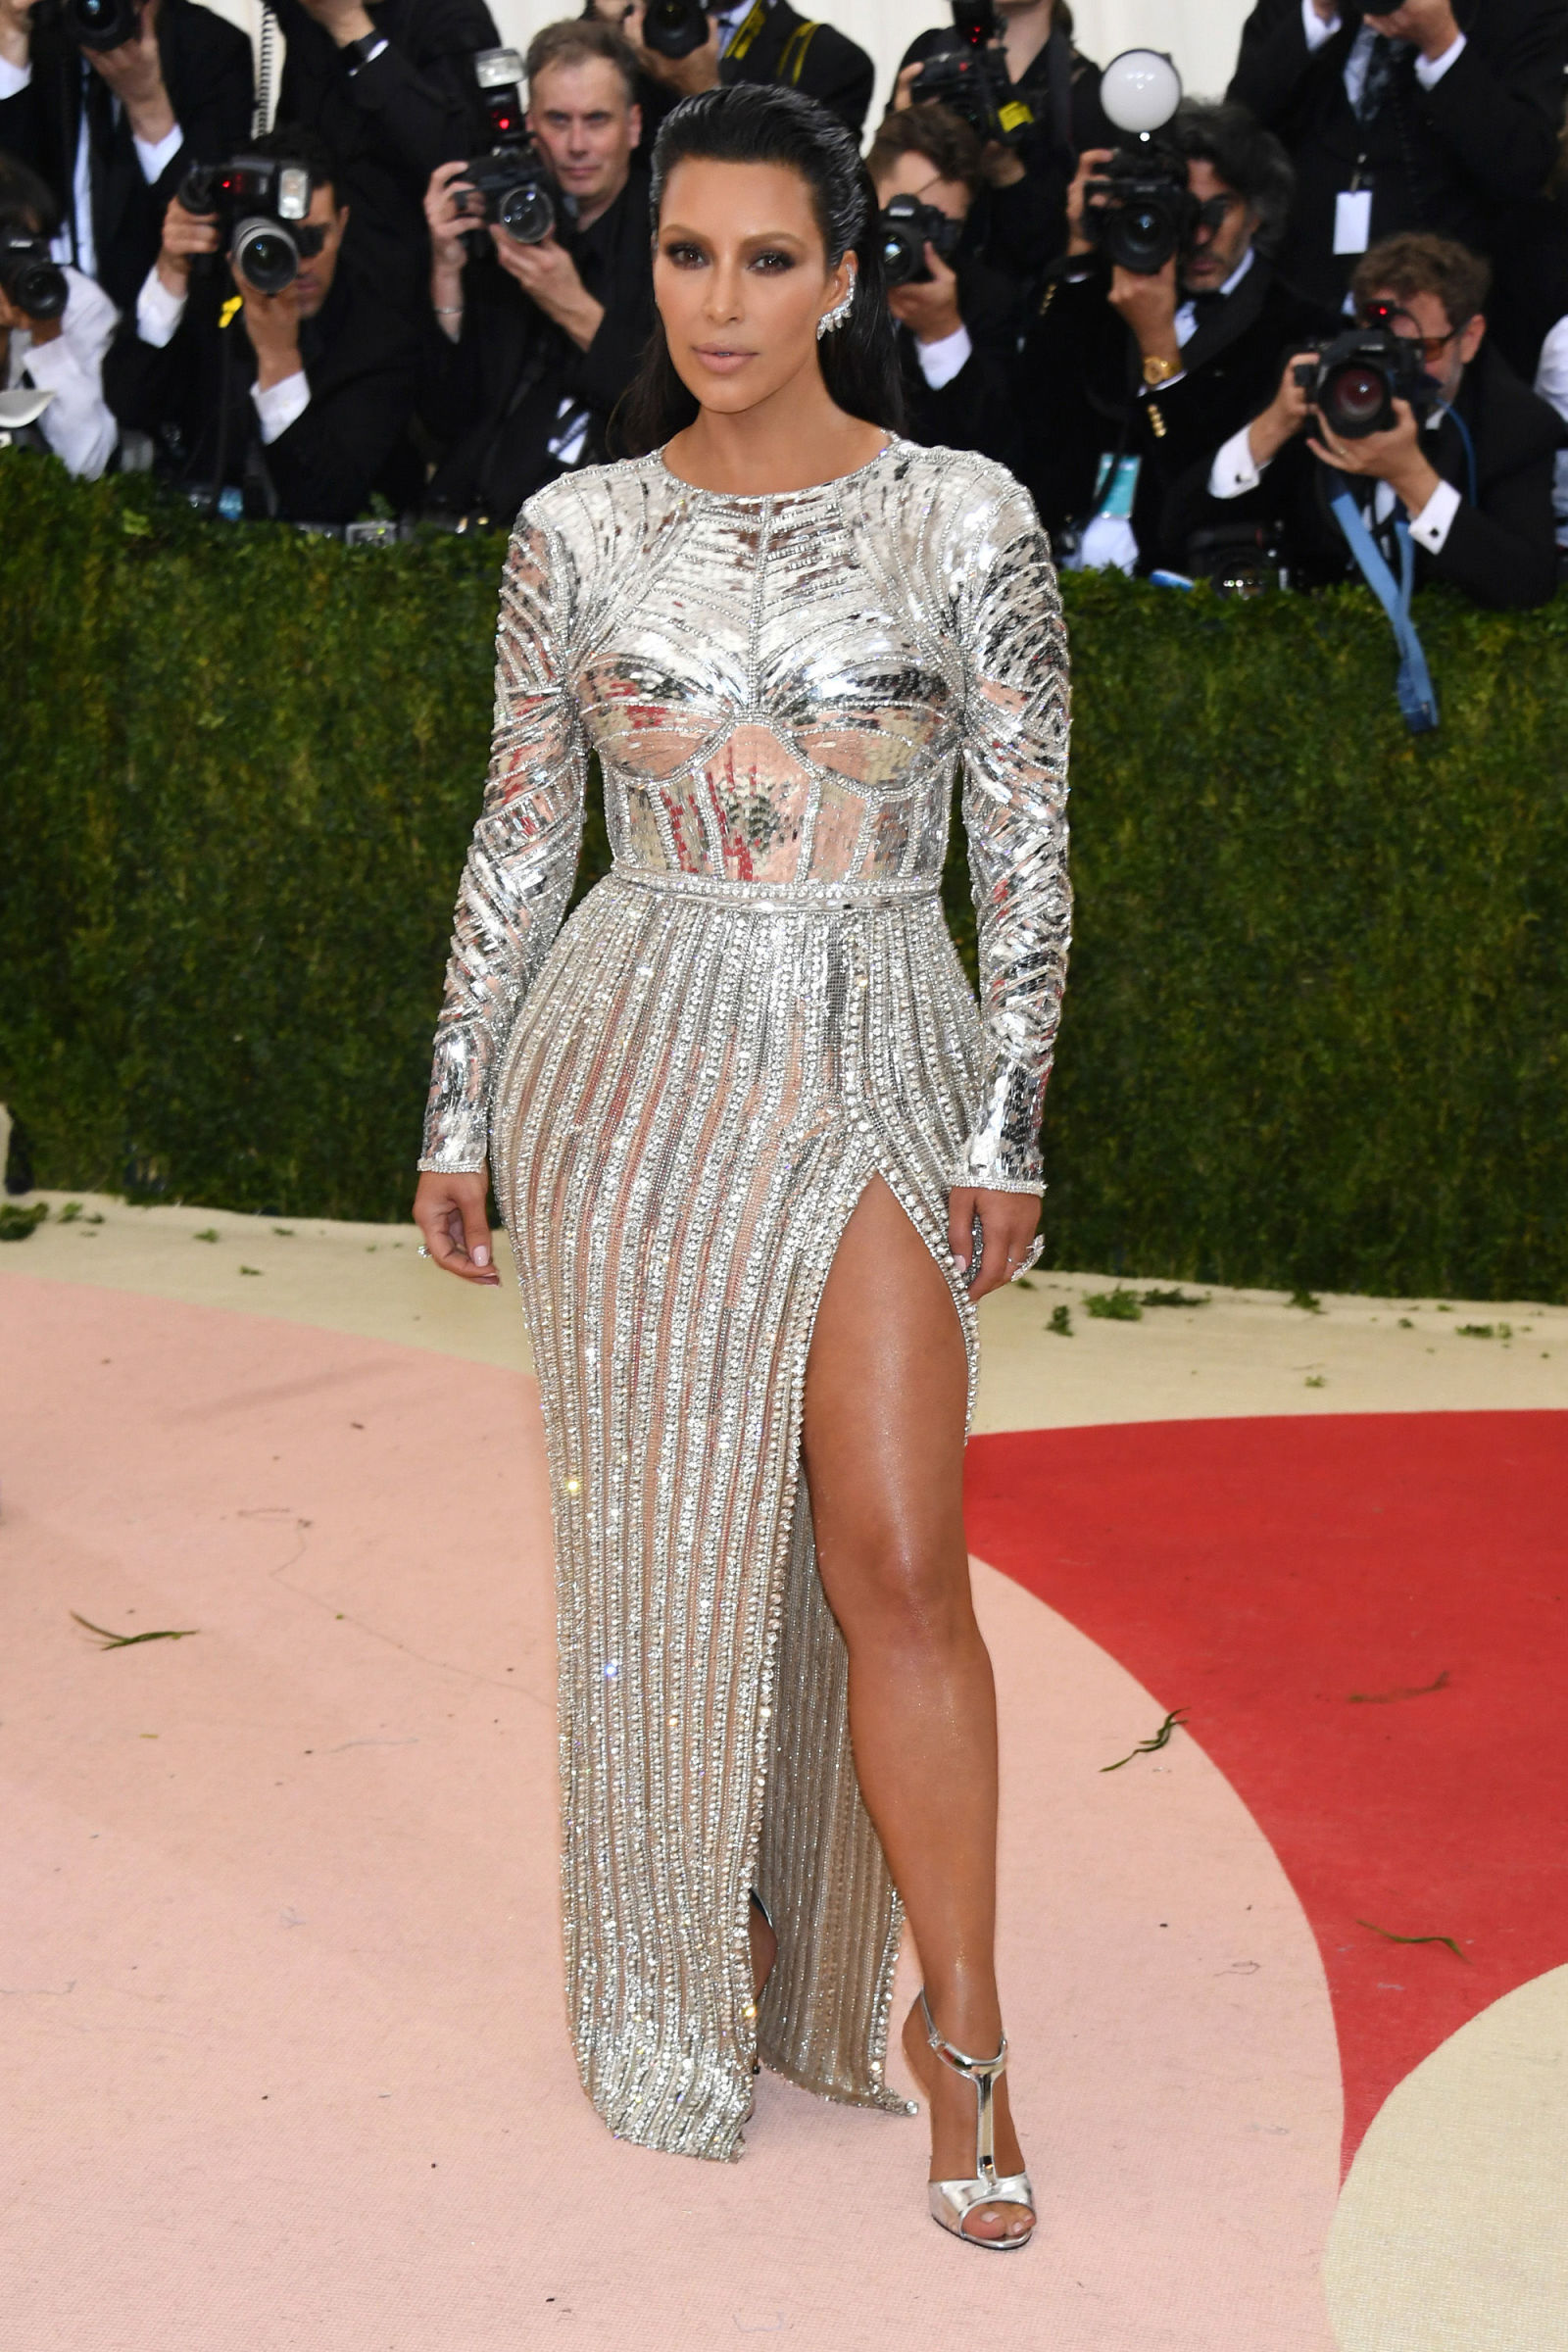 Kim Kardashian hairstyles at Met Gala 2016